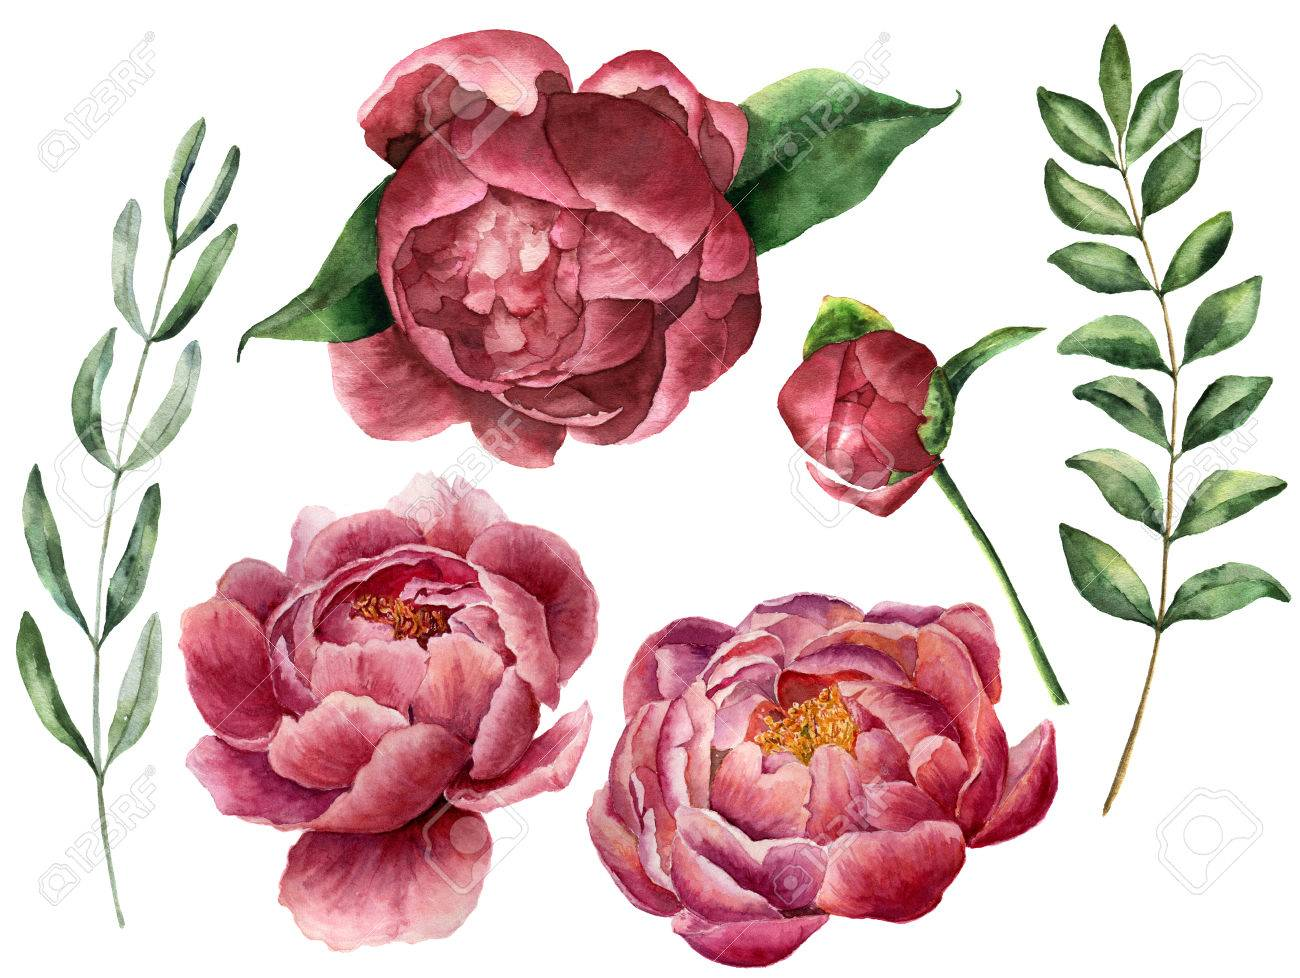 Watercolor floral set with peony and greenery. Hand painted flowers with leaves, branch of eucalyptus and rosemary isolated on white background. Botanical illustration for design. - 78667585